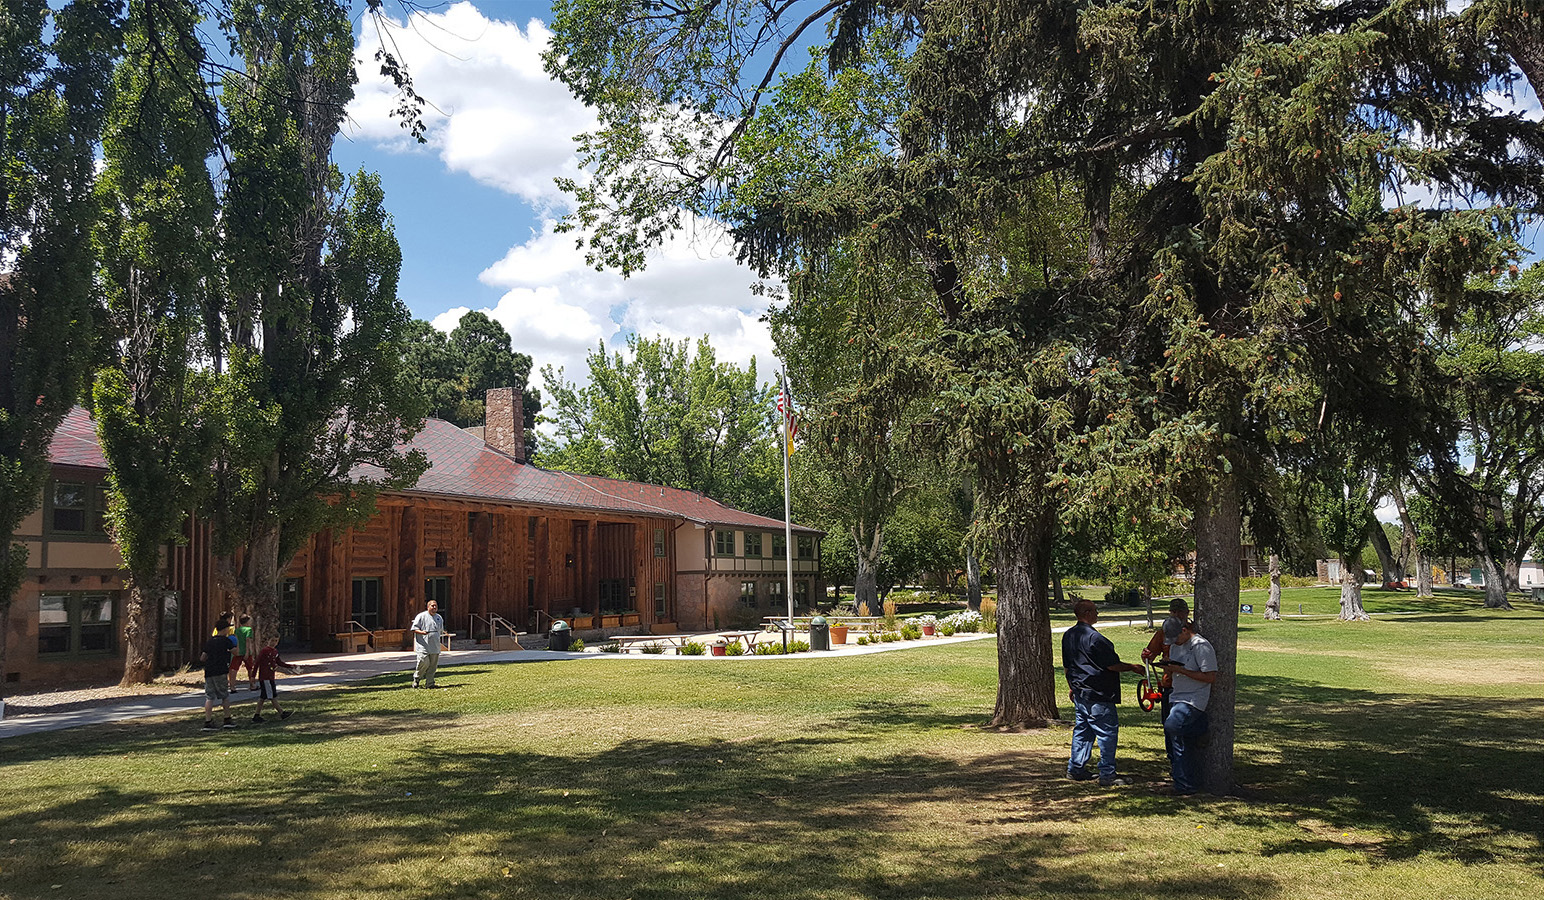 Fuller Lodge in Los Alamos as it currently appears.